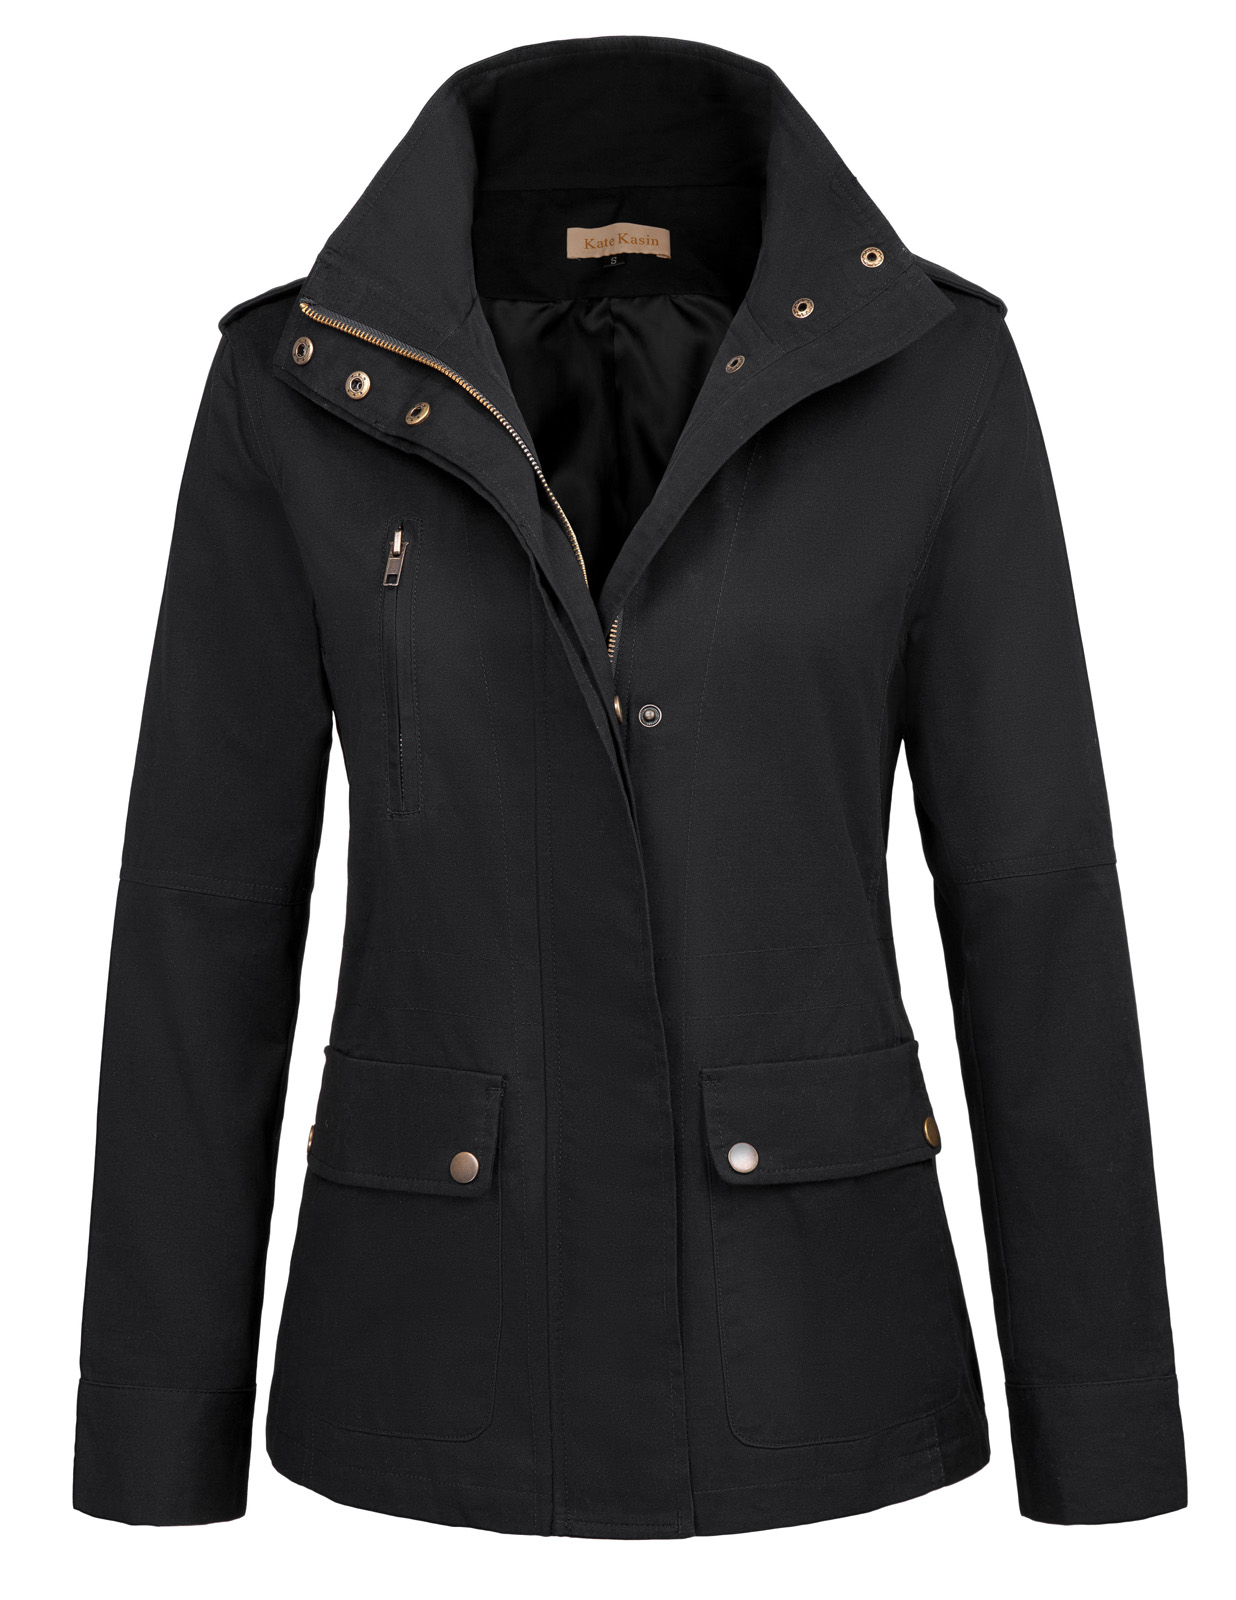 clothes Women Basic Jackets Military Coat Winter Cotton Stand Collar Long Sleeve Zipper pockets Autumn Jackets Outerwear ladies